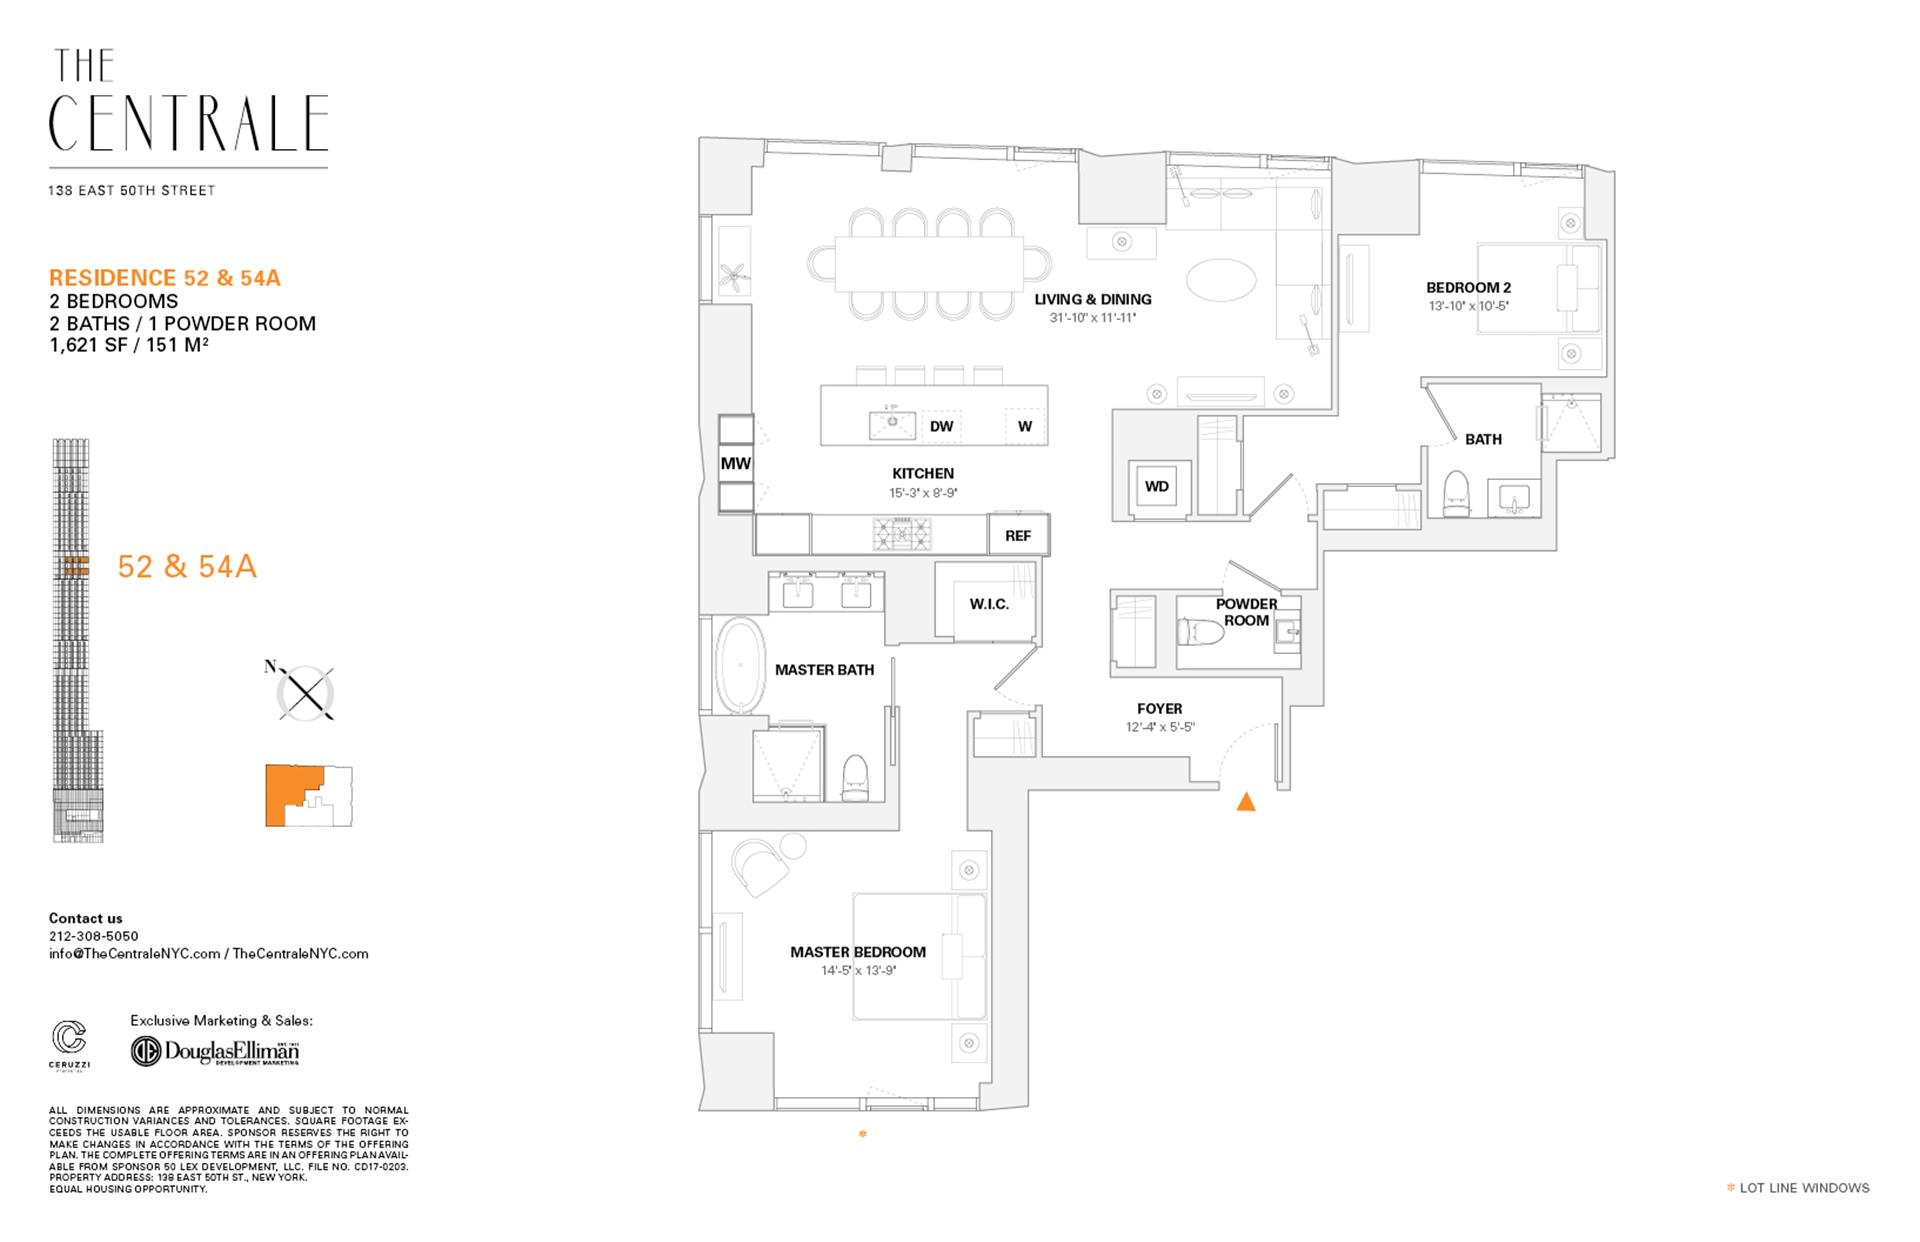 Floor plan of The Centrale, 138 East 50th Street, 52A - Midtown, New York